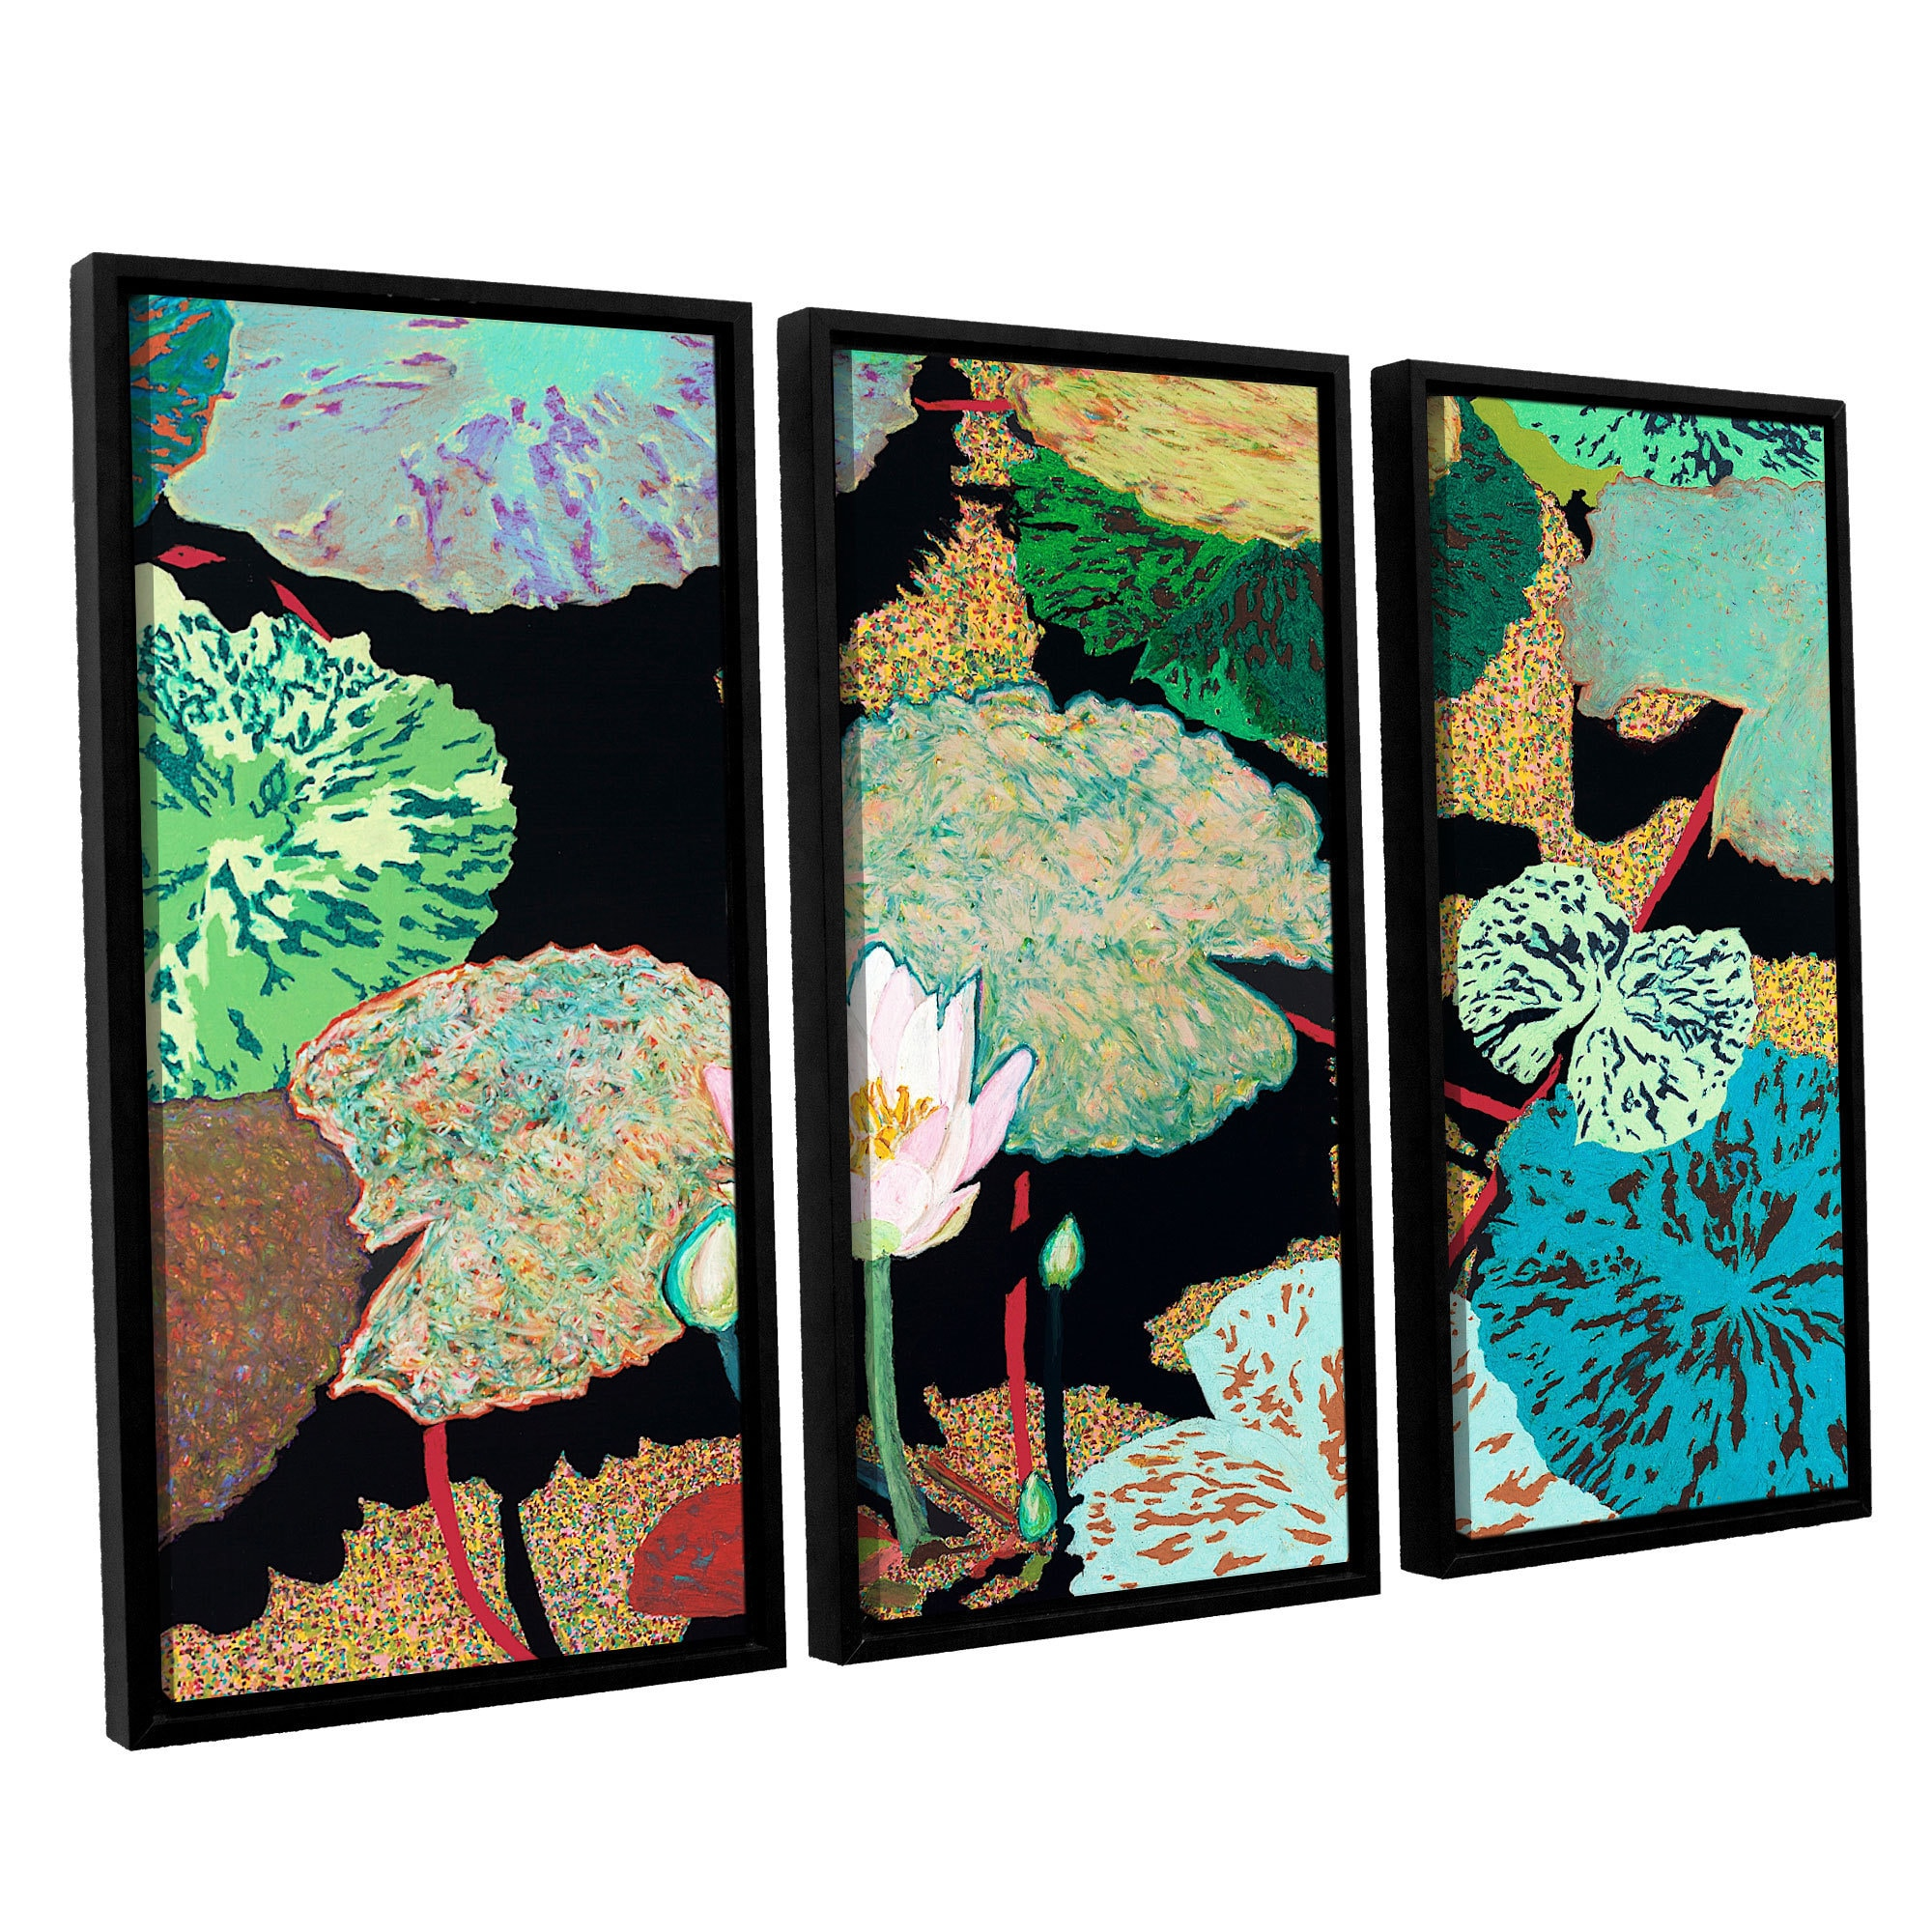 Artwall Allan Friedlander Hot And Humid 3 Piece Floater Framed Canvas Set Overstock 10380023